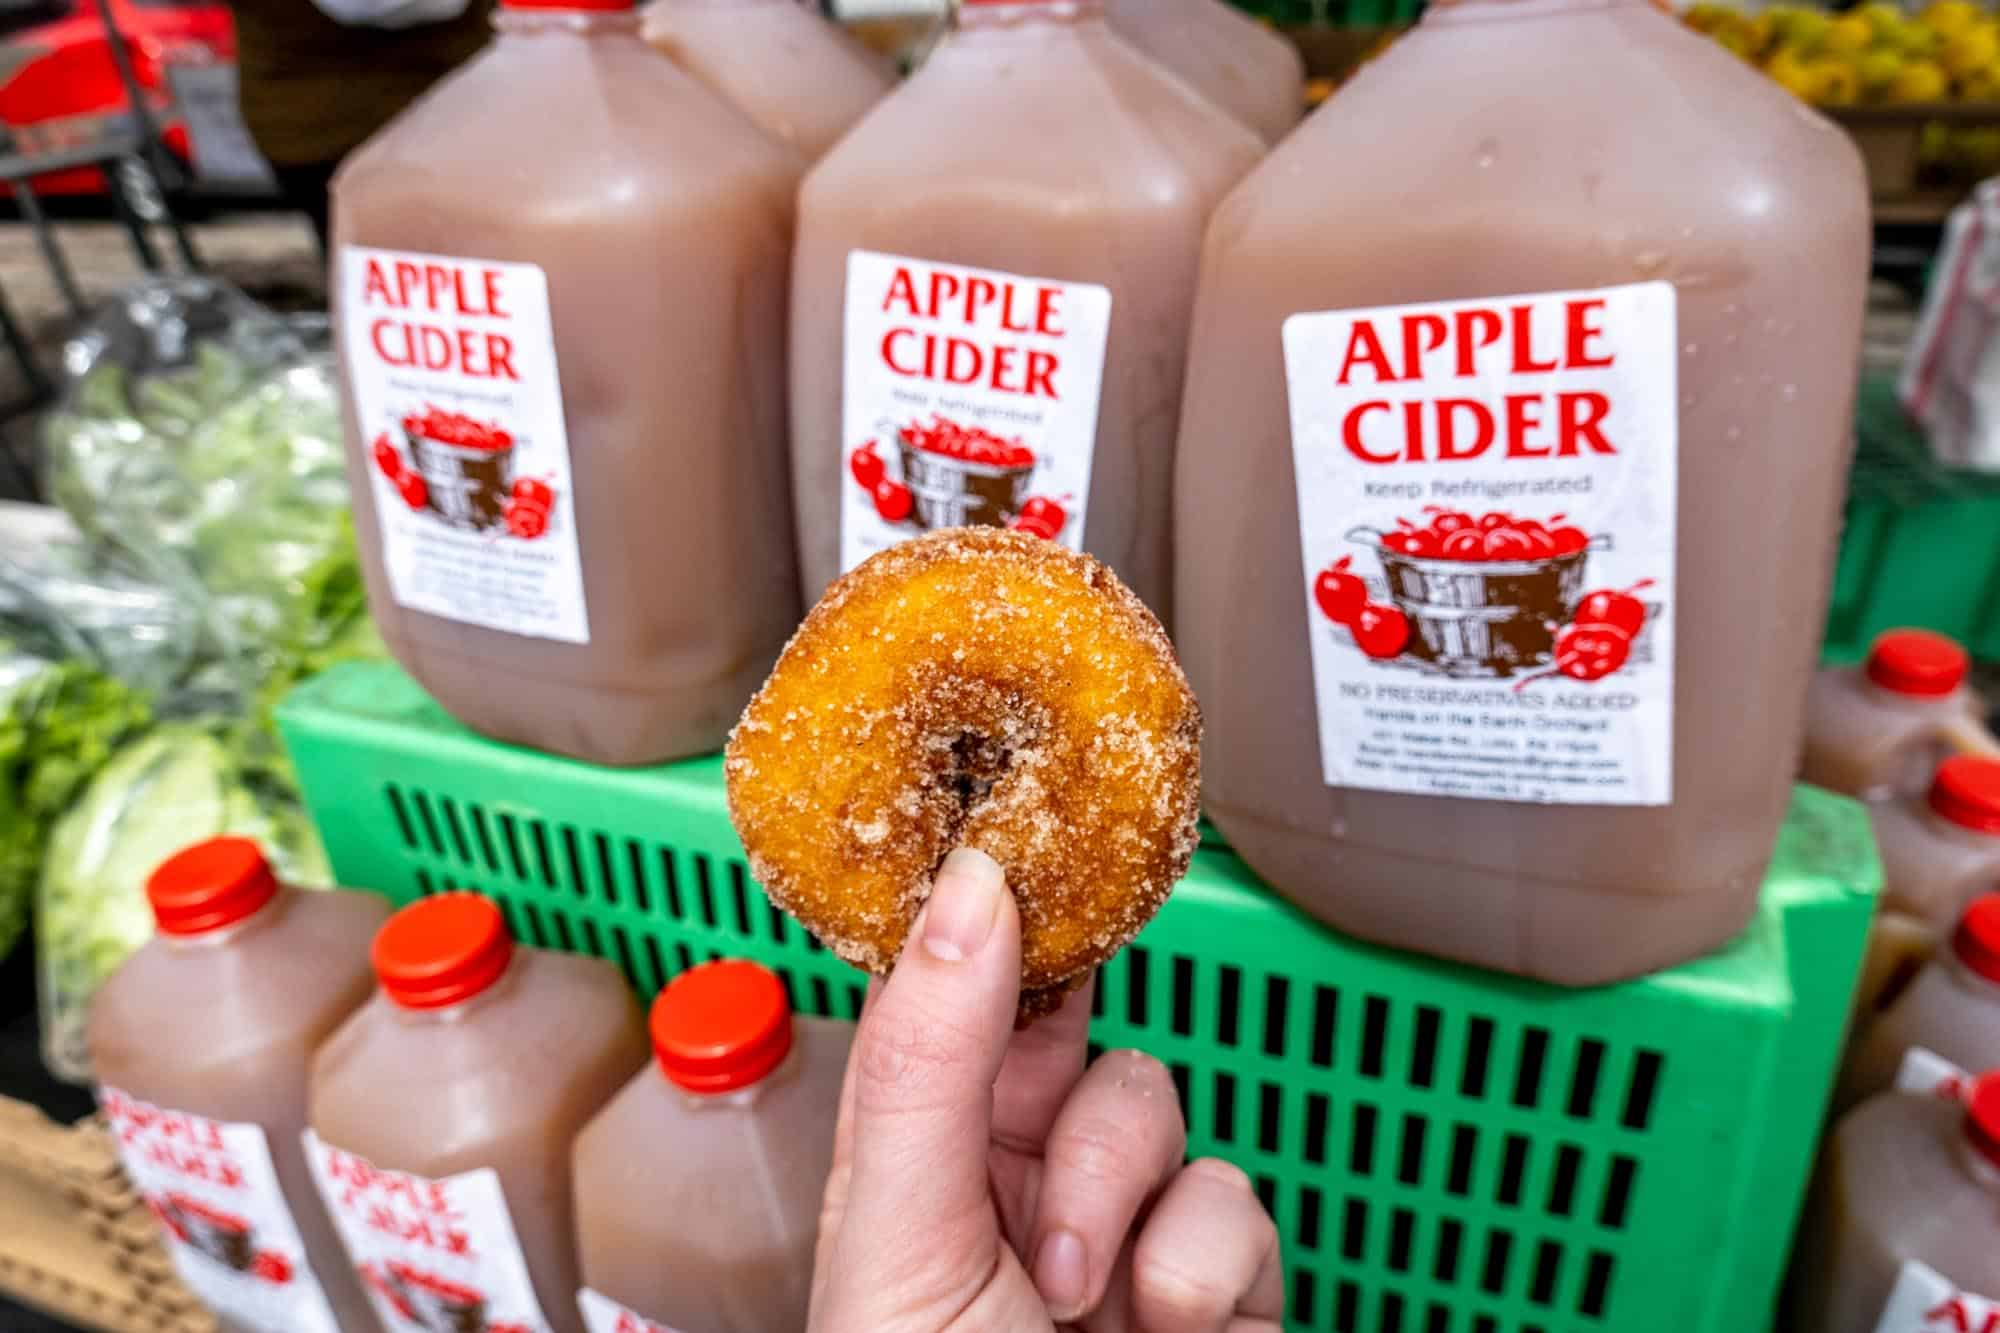 Hand holding an apple cider donut in front of gallons of apple cider